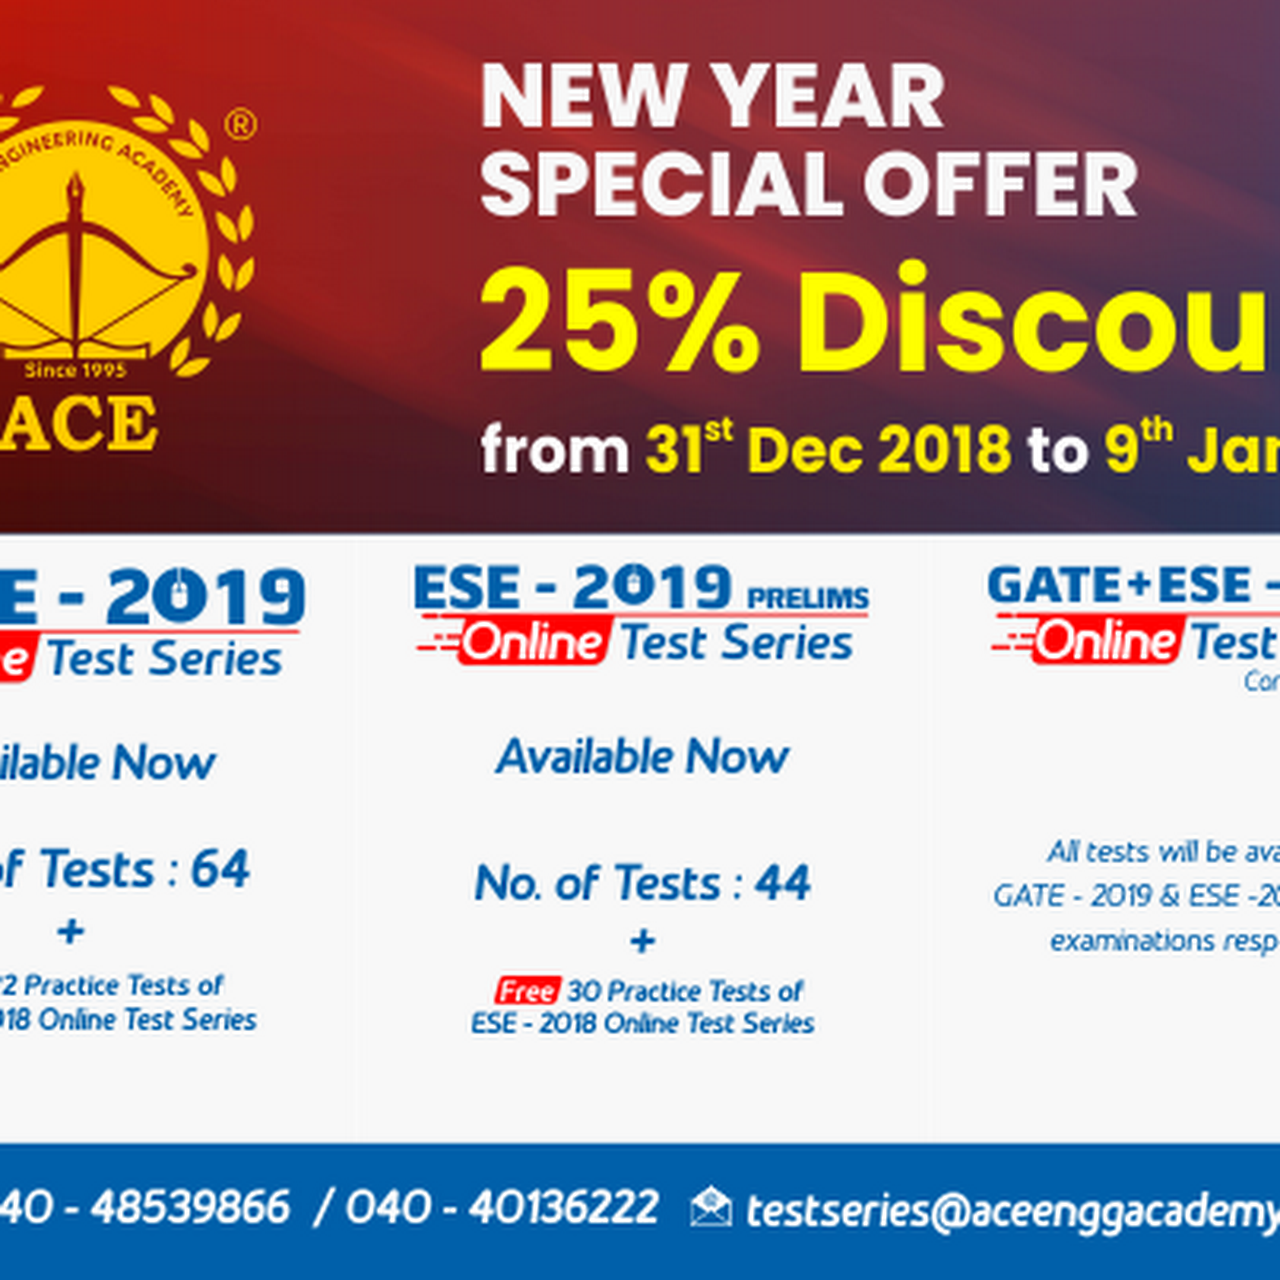 ace online test series 2019